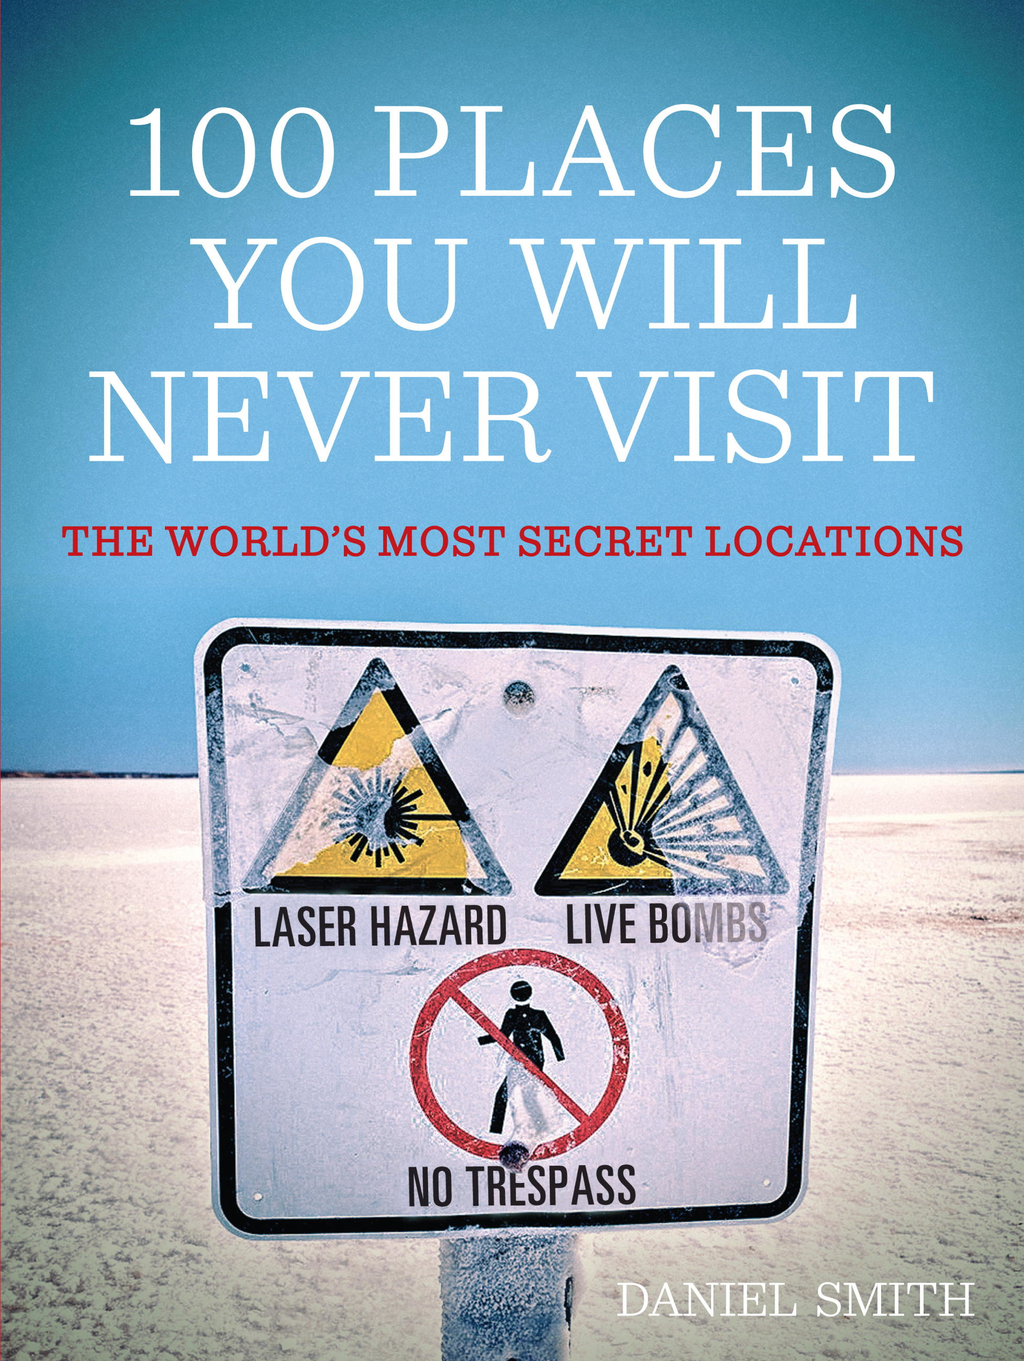 100 Places You Will Never Visit The World's Most Secret Locations